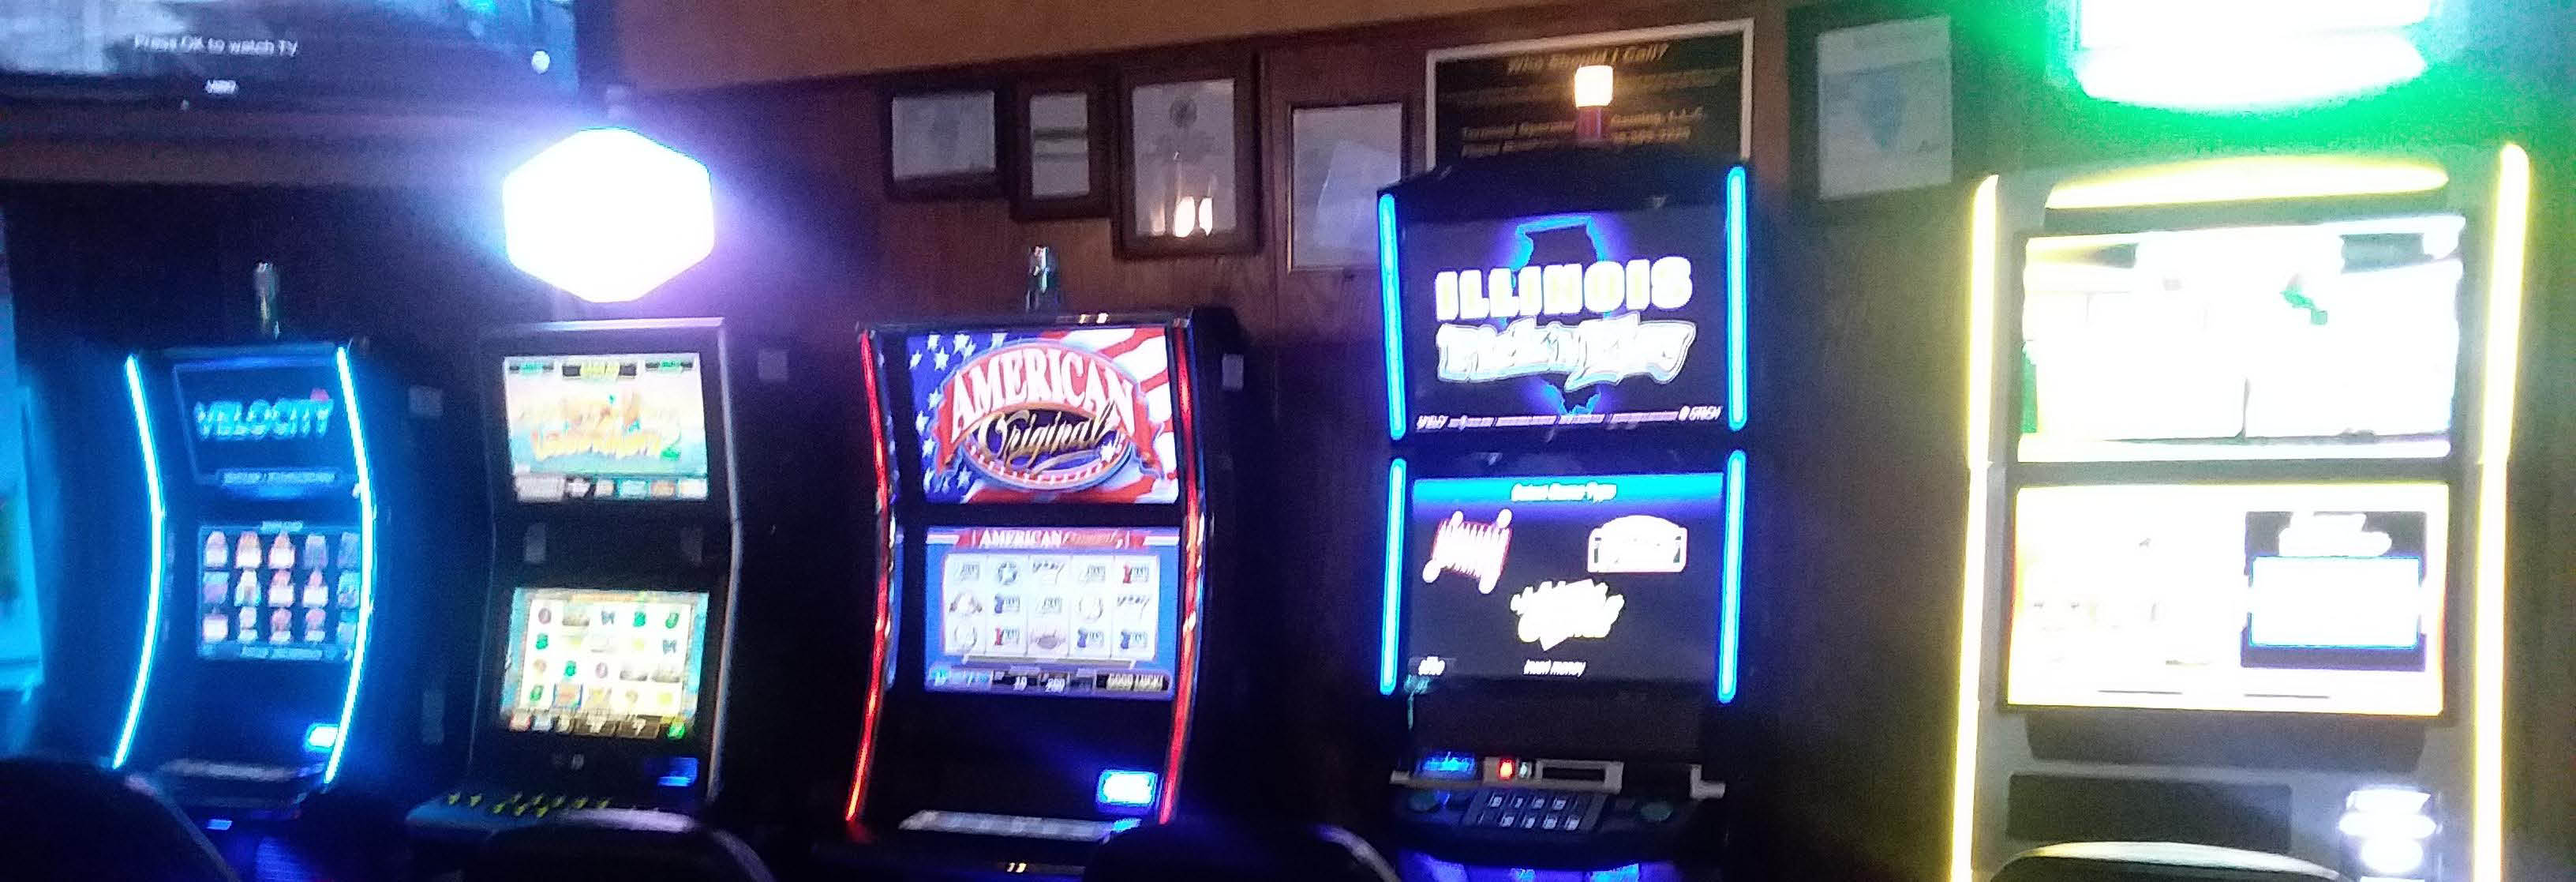 Video gaming at Rosa's in Chicago Ridge, IL.